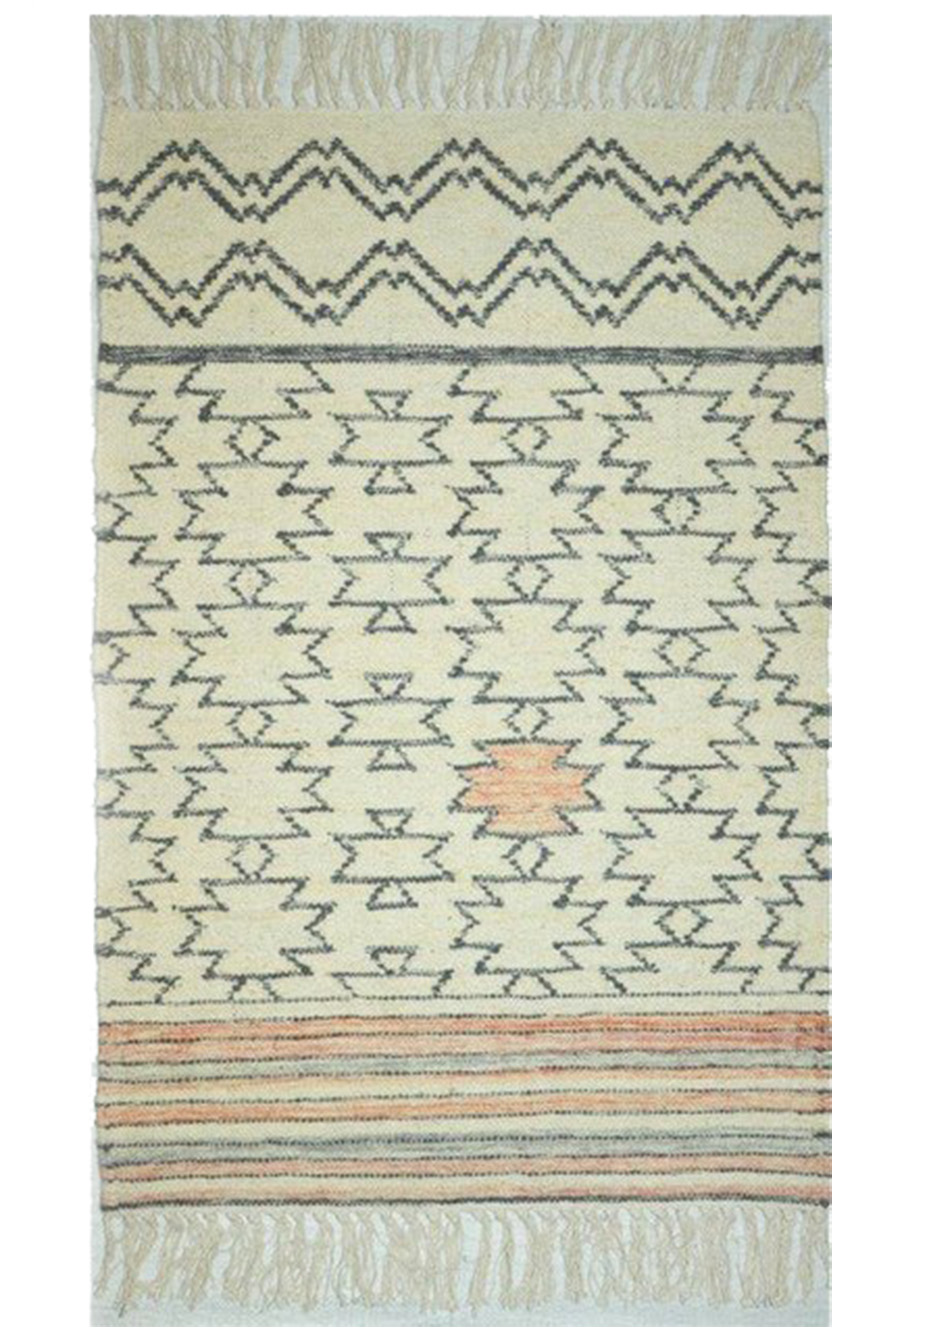 Small Cairo Rug by Bunglo - $98